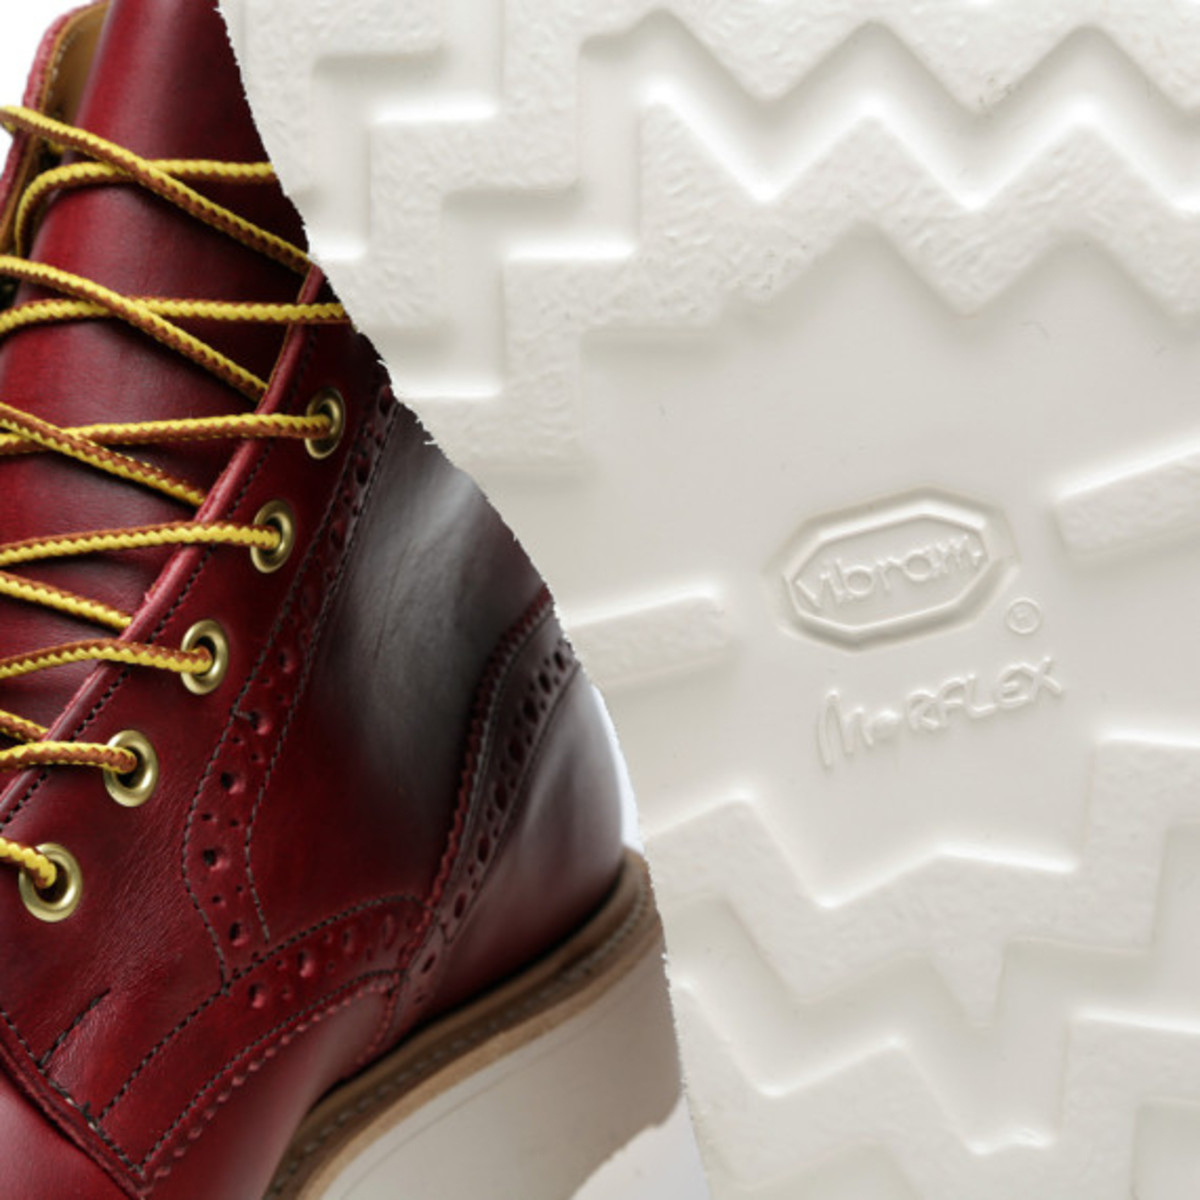 end-trickers-vibram-sole-stow-boot-19